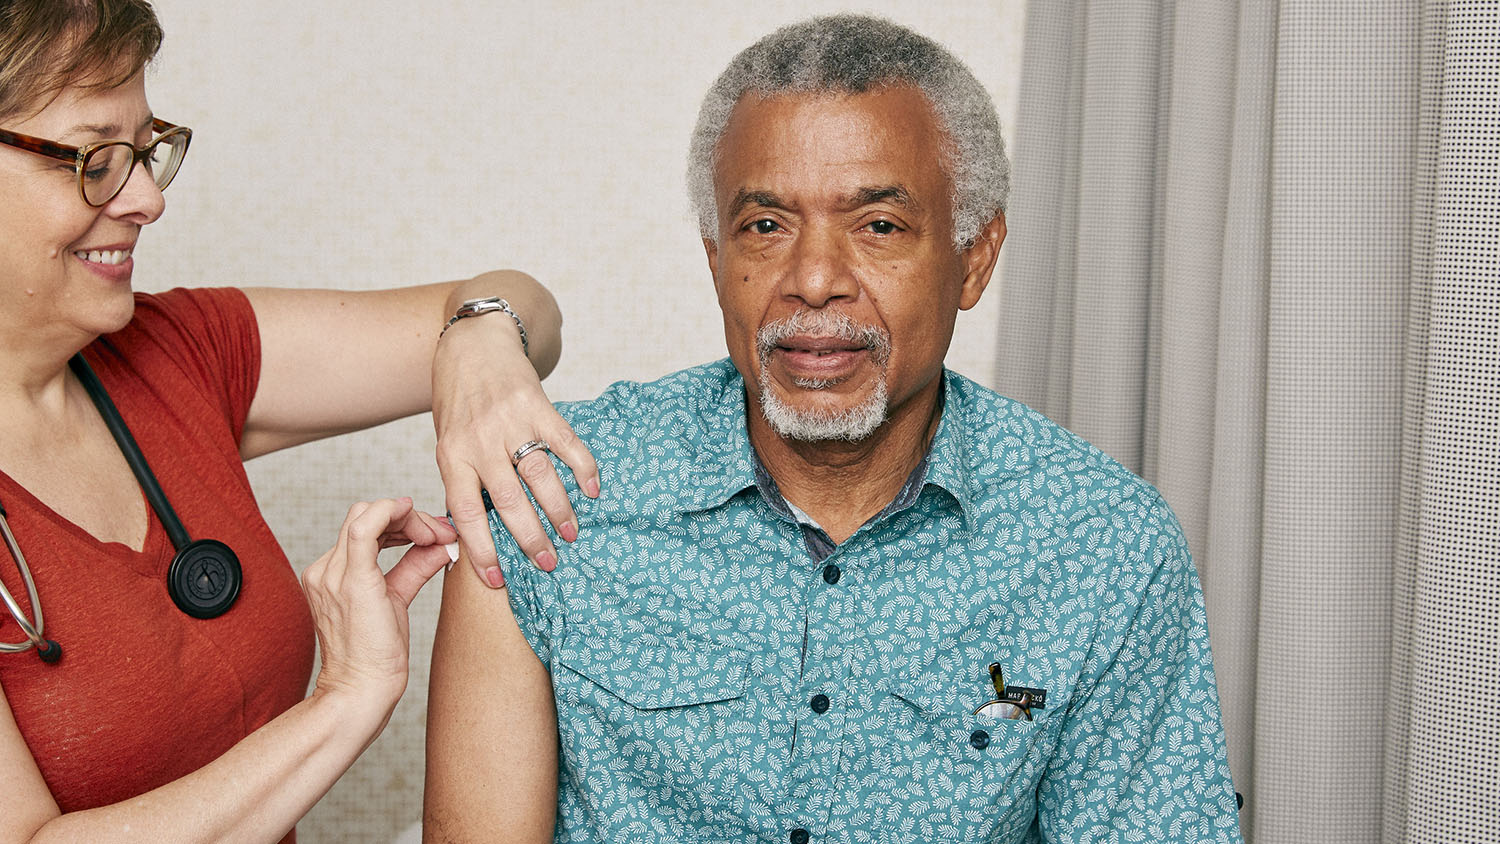 An elderly Black man receiving an injection in his arm